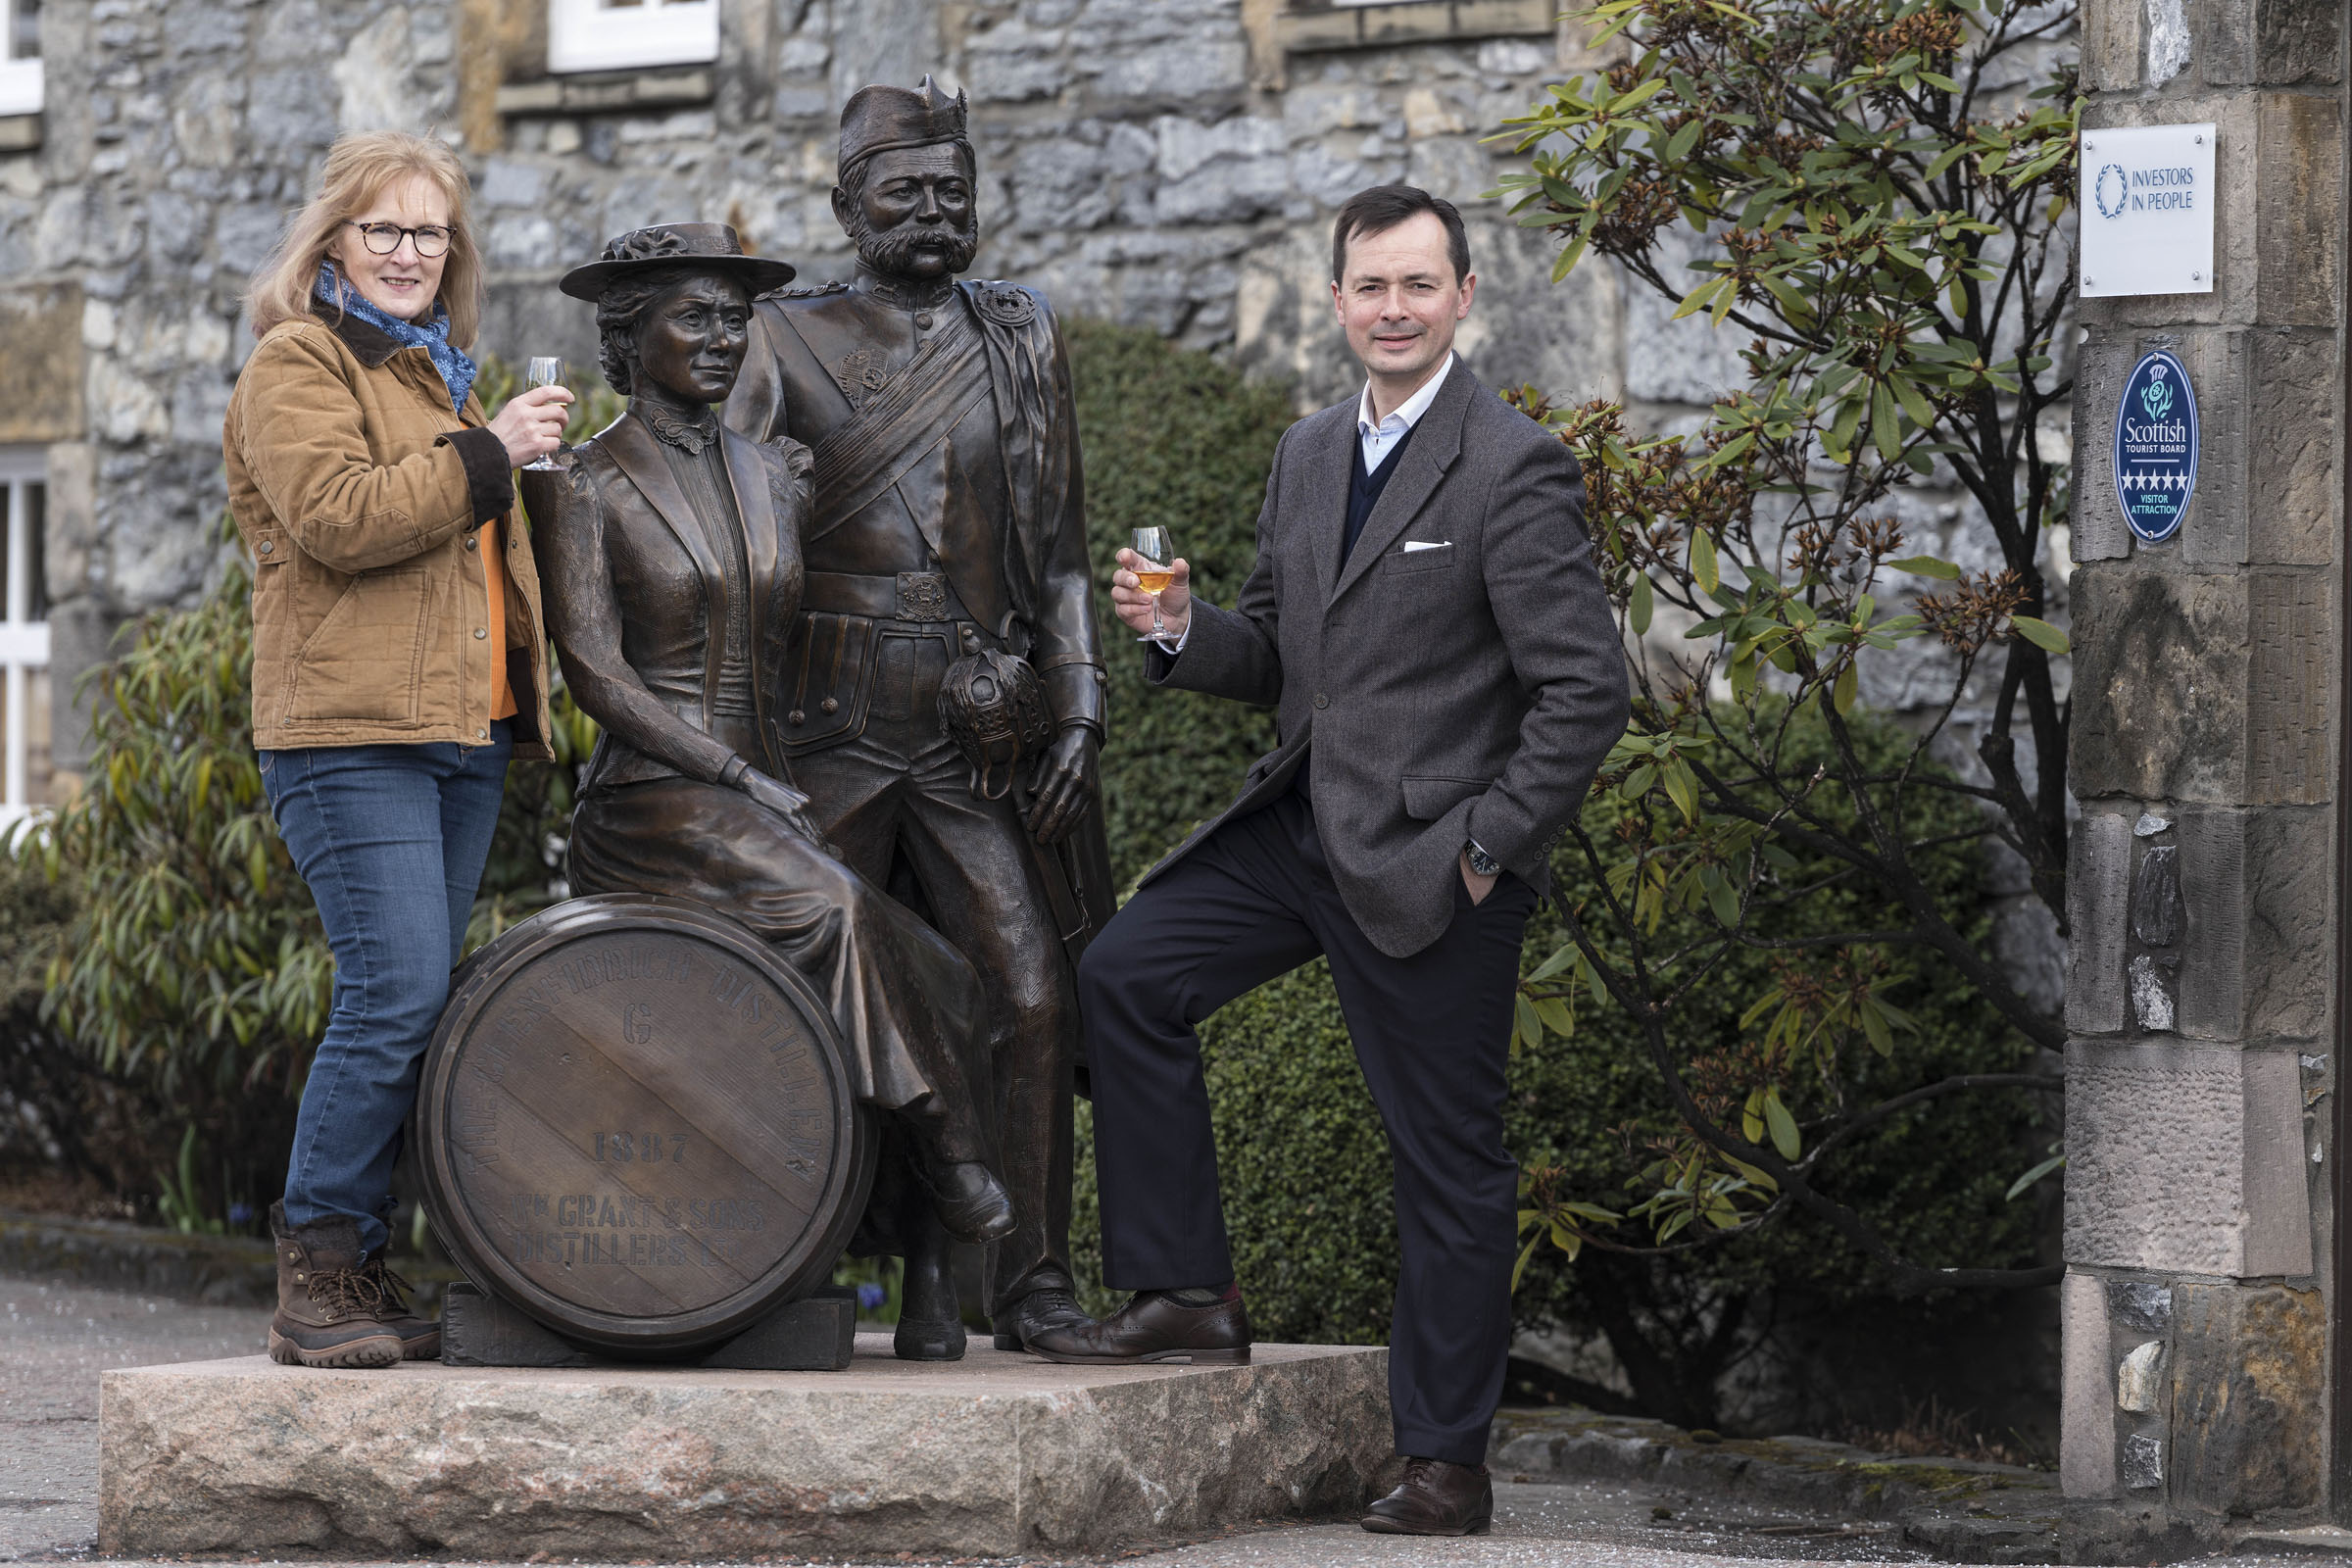 New Statue At Glenfiddich Celebrates The Distillery's Founding Family photo